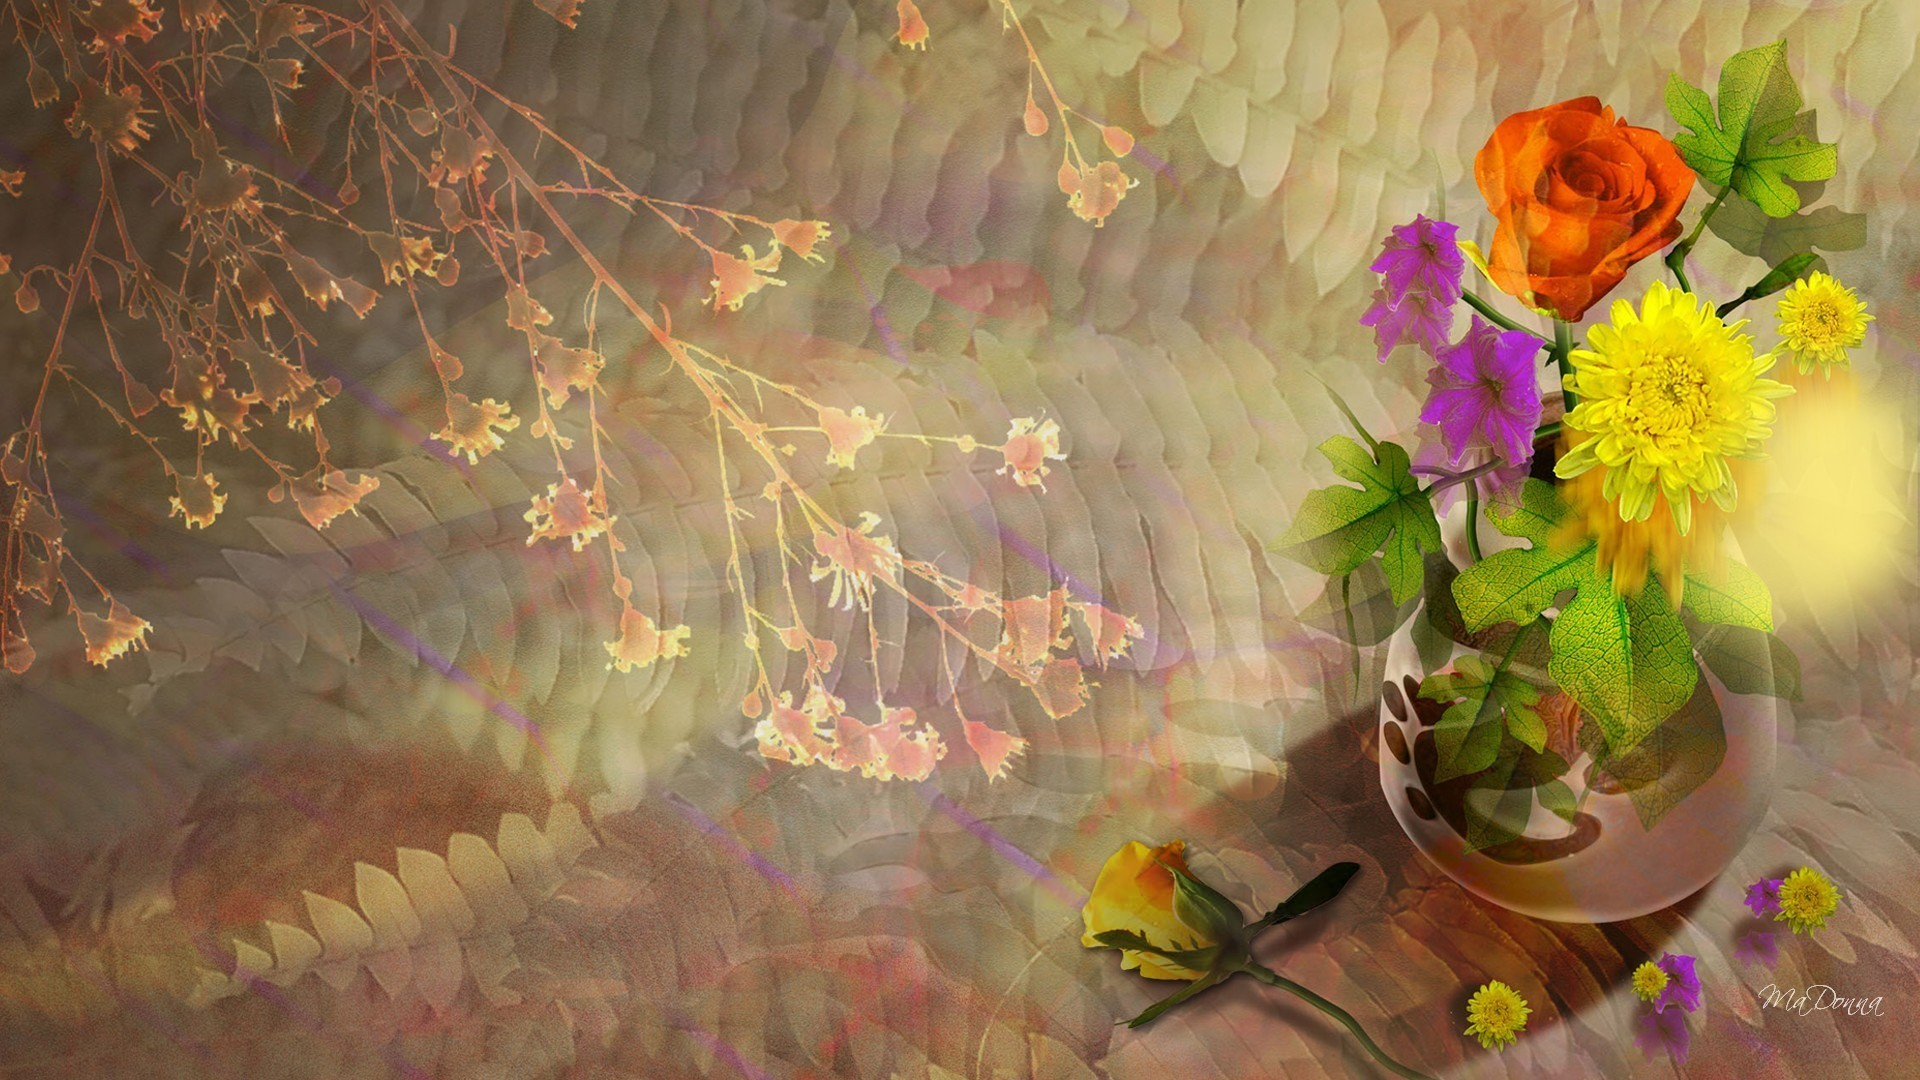 58 Fall Flowers Wallpapers On Wallpaperplay   Data - Hd Wallpaper Autumn Flowers - HD Wallpaper